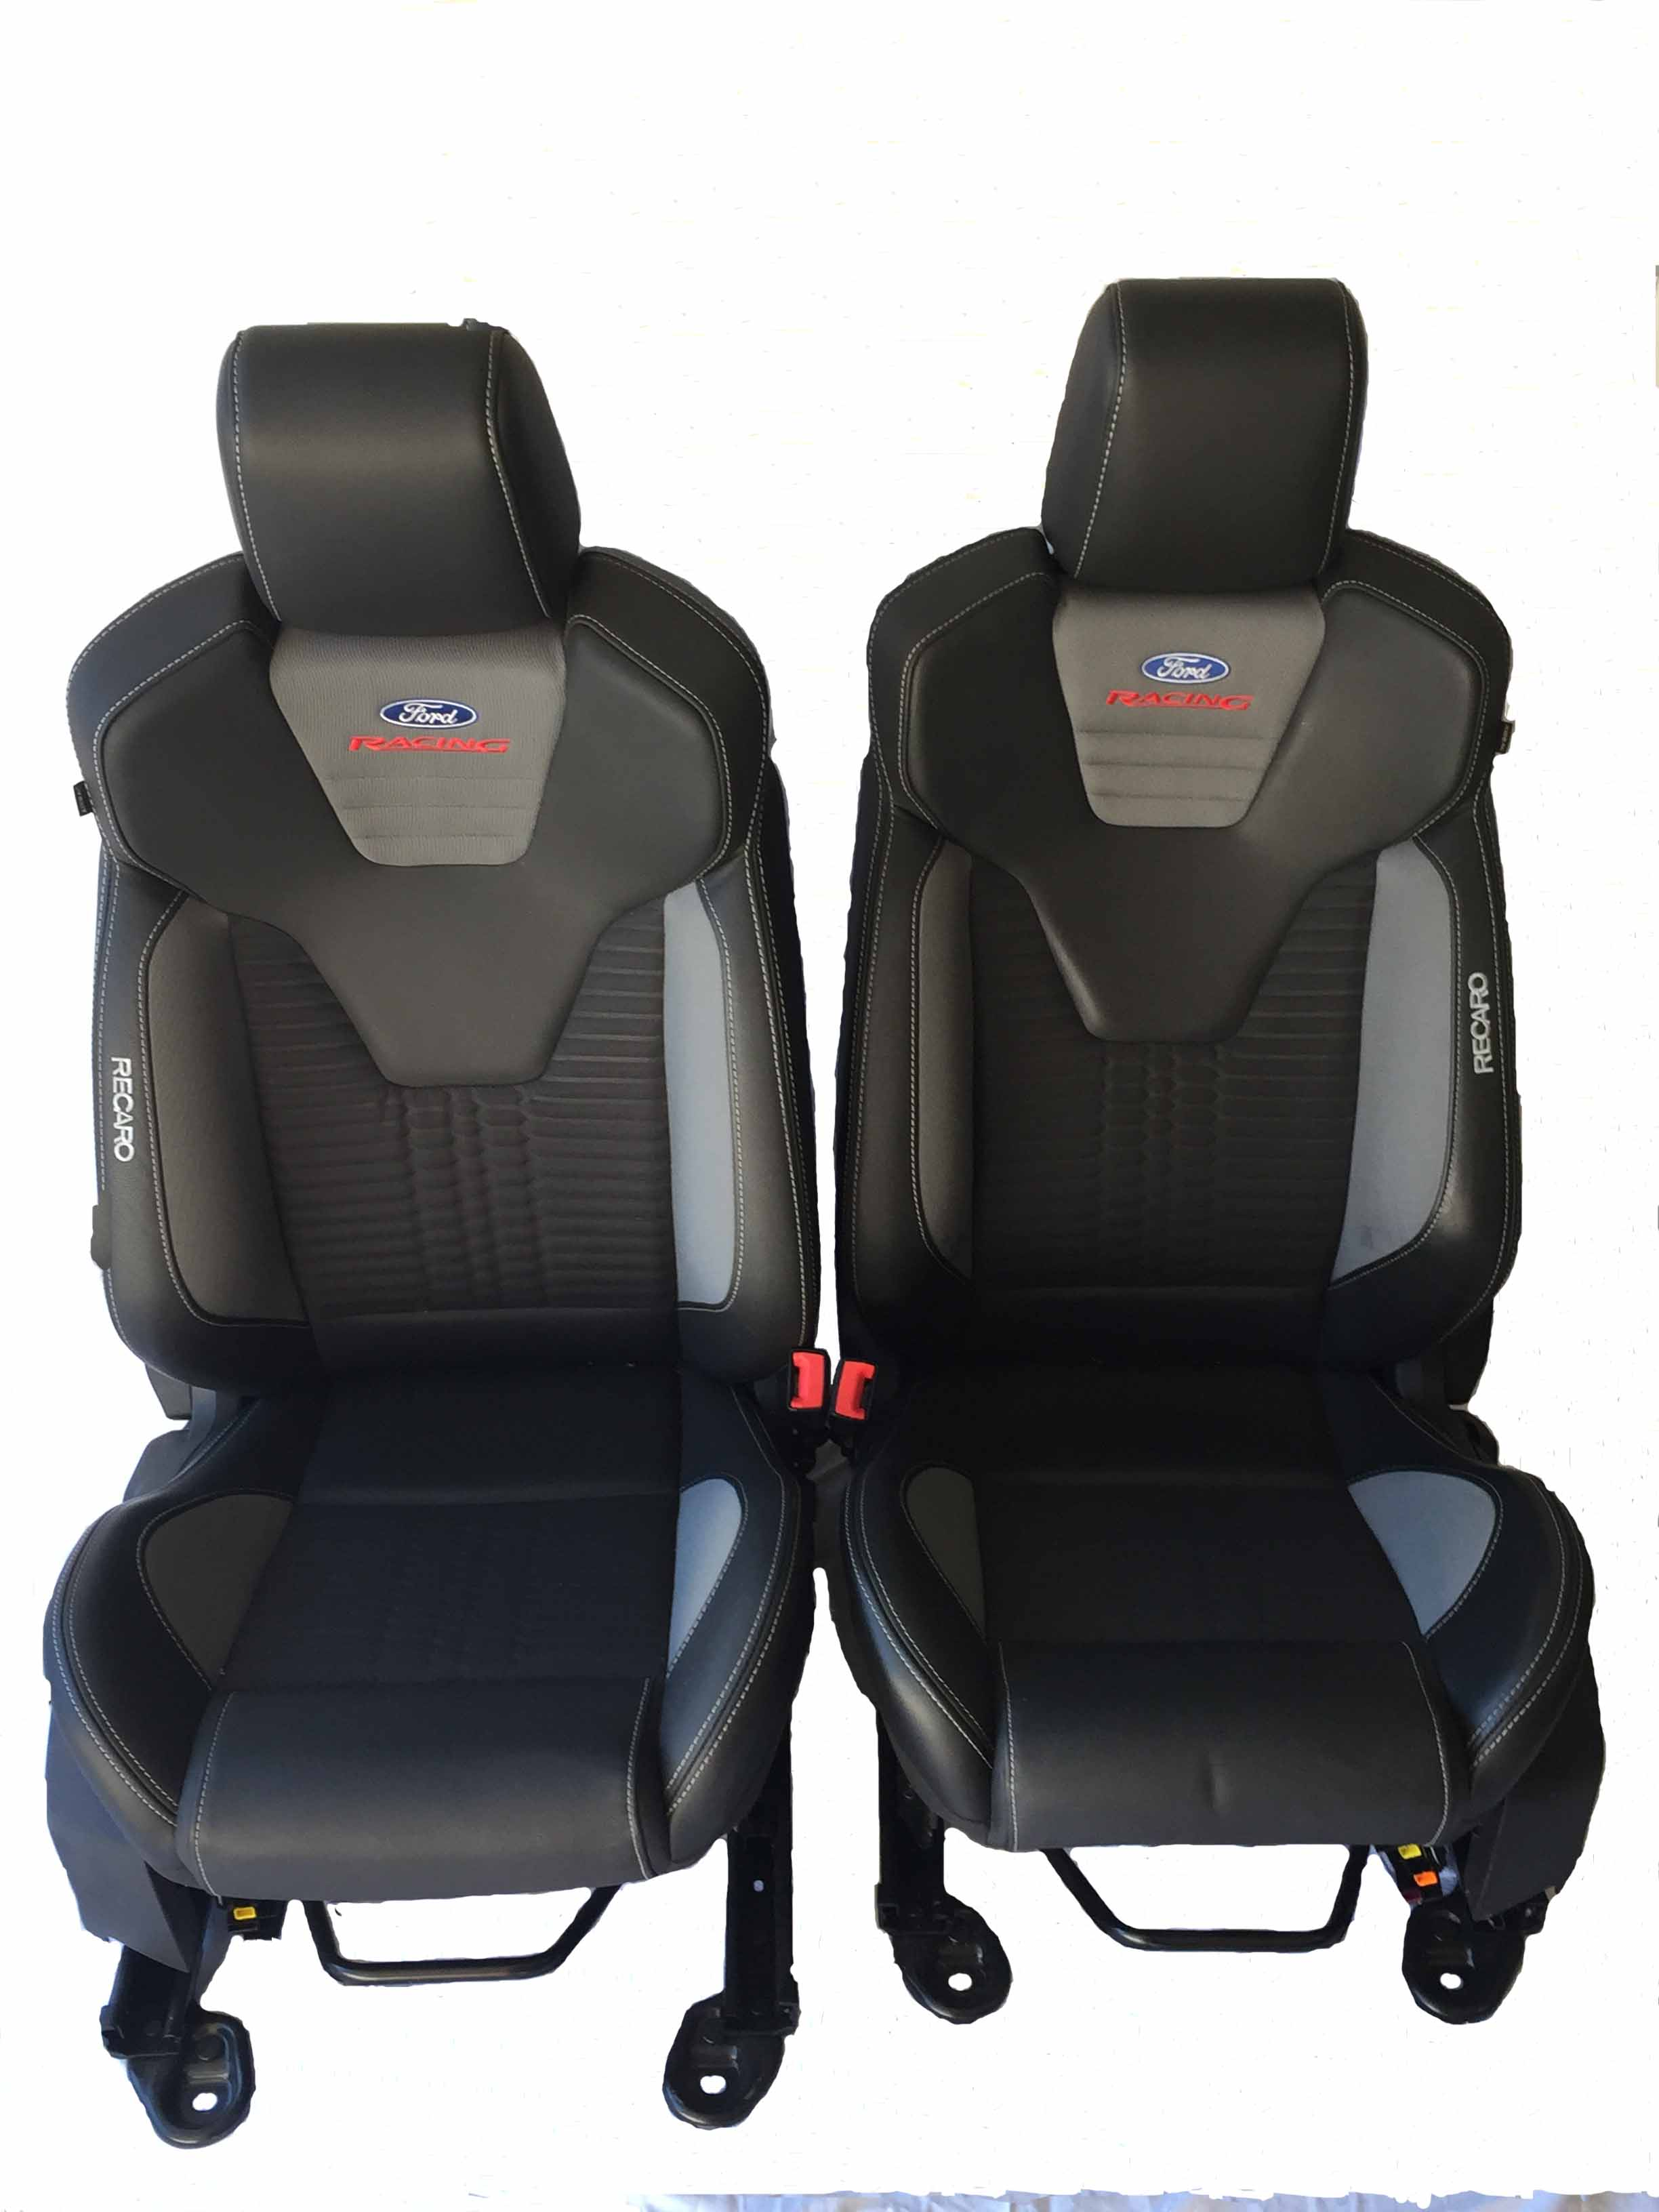 ford focus recaro seat covers velcromag. Black Bedroom Furniture Sets. Home Design Ideas